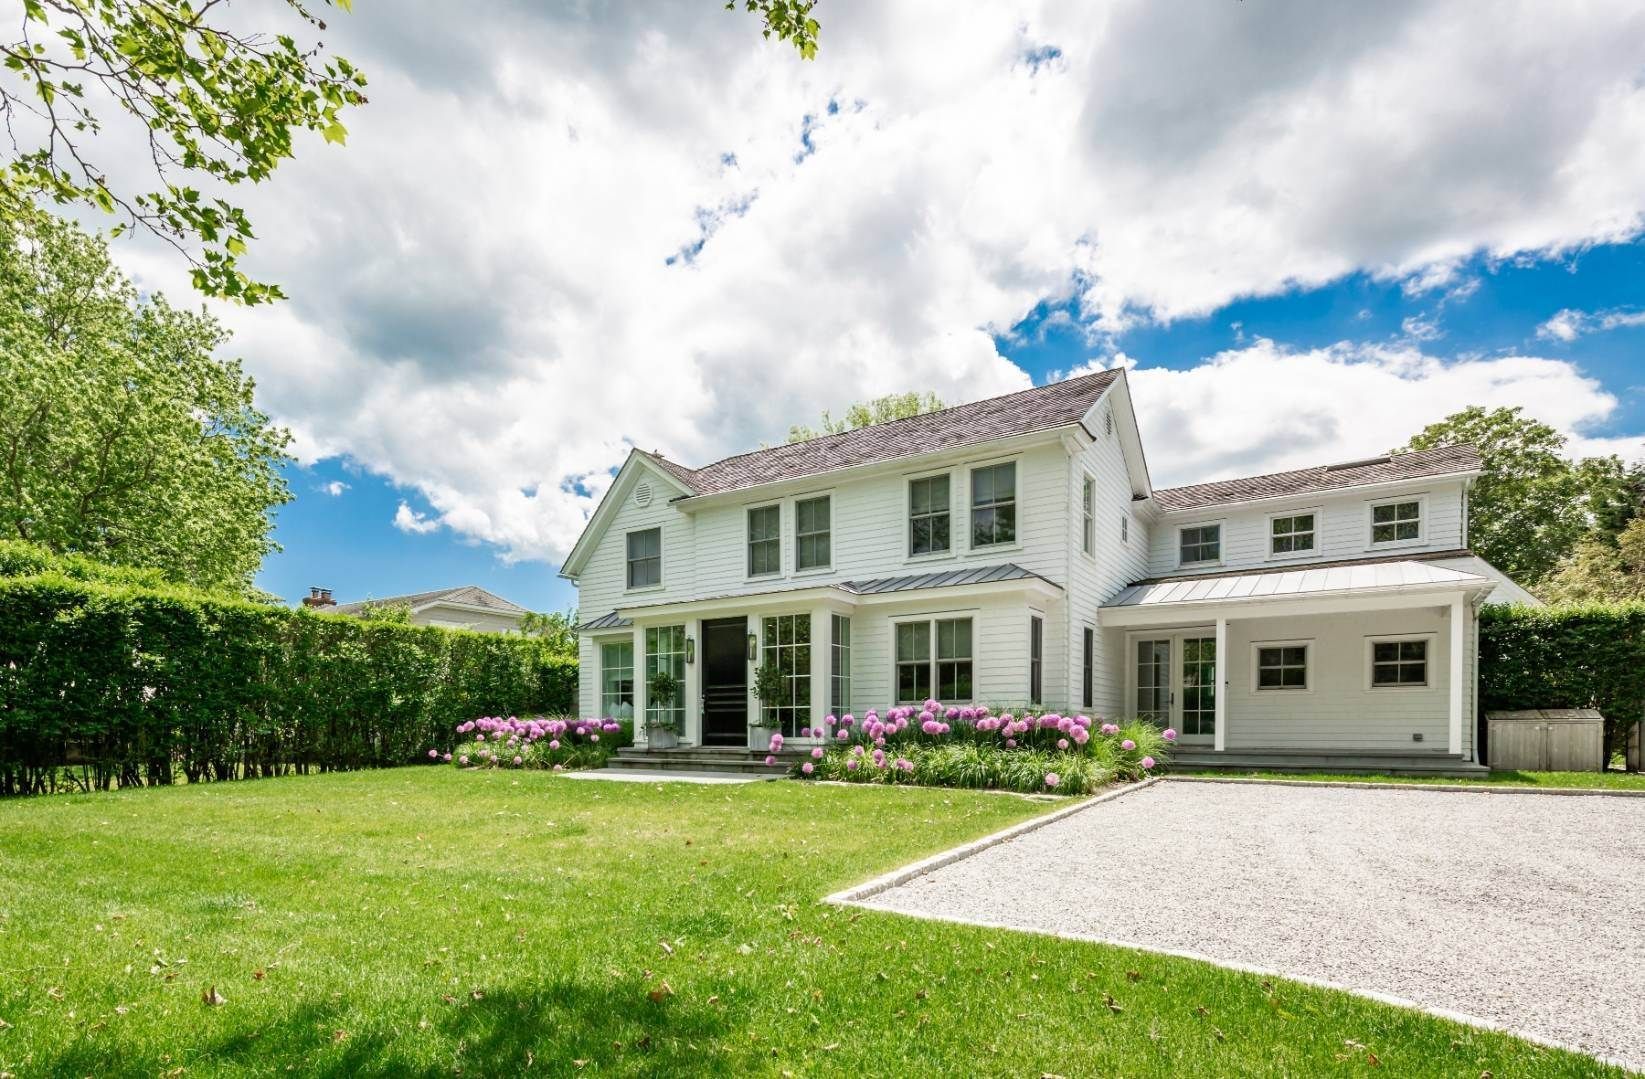 Single Family Home at New And Stylish In The Lanes Amagansett, NY 11930